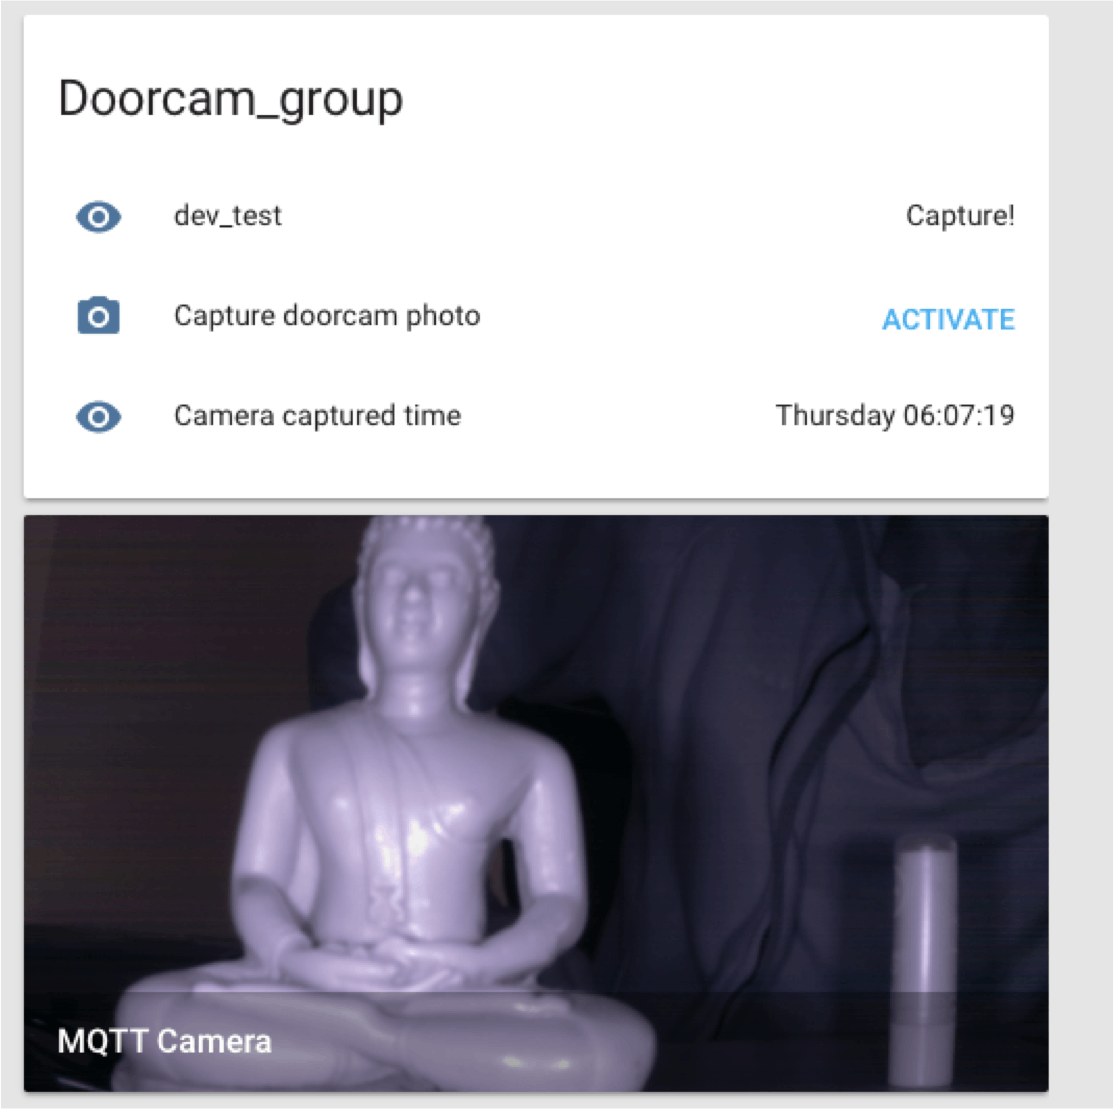 Figure 10. The doorbell camera view in Home-assistant